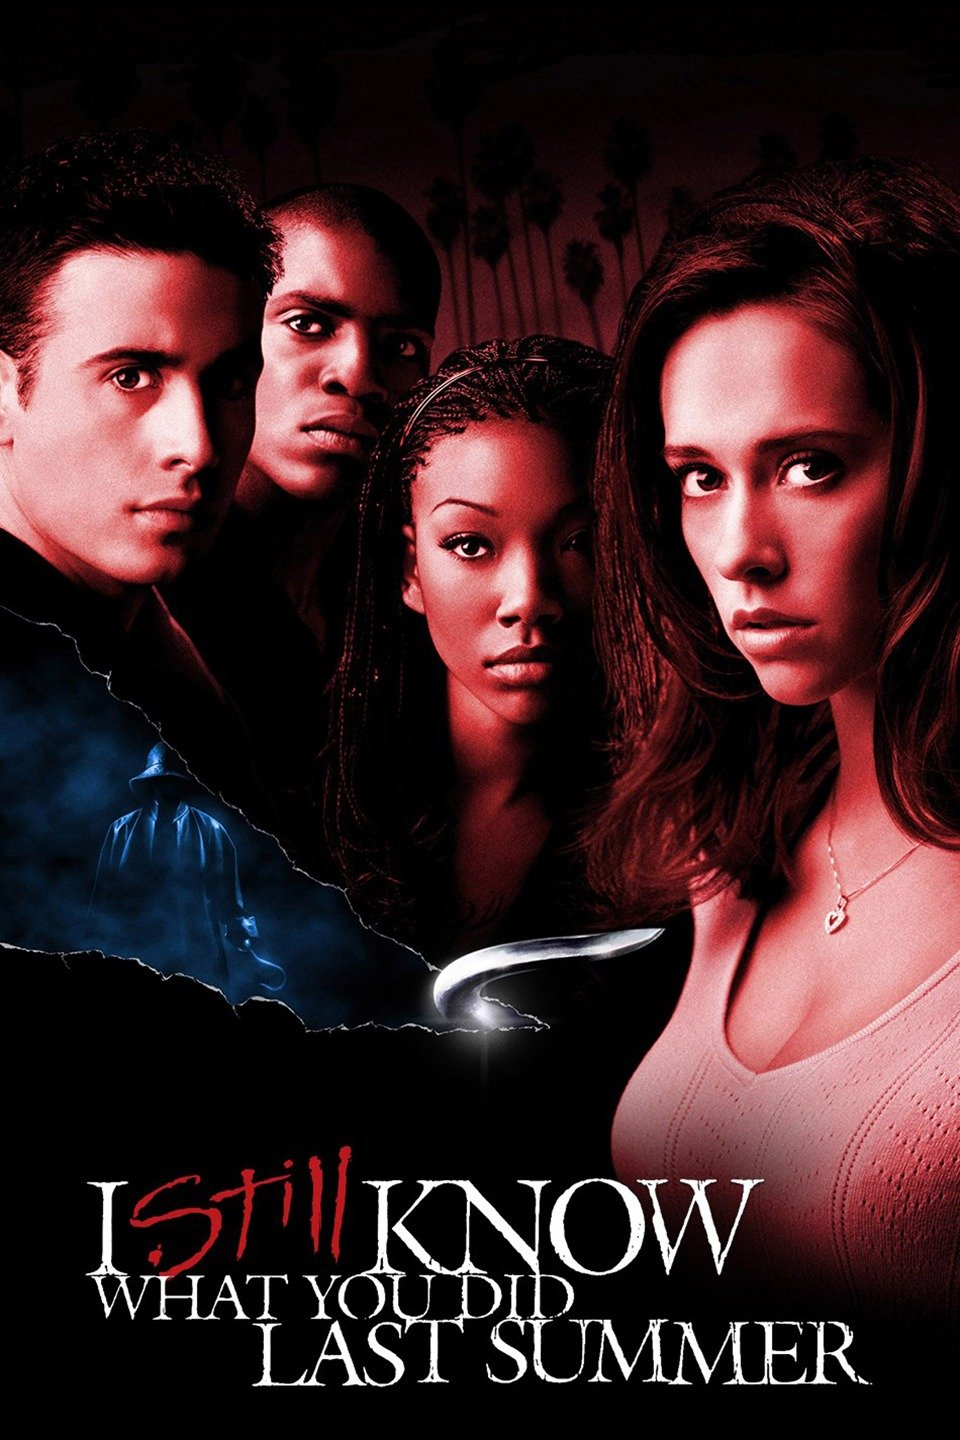 34. I Still Know What You Did Last Summer - A lazy ripoff of its own original, this sequel falls flat in almost every way in part due to the poorly written script and lack of direction.